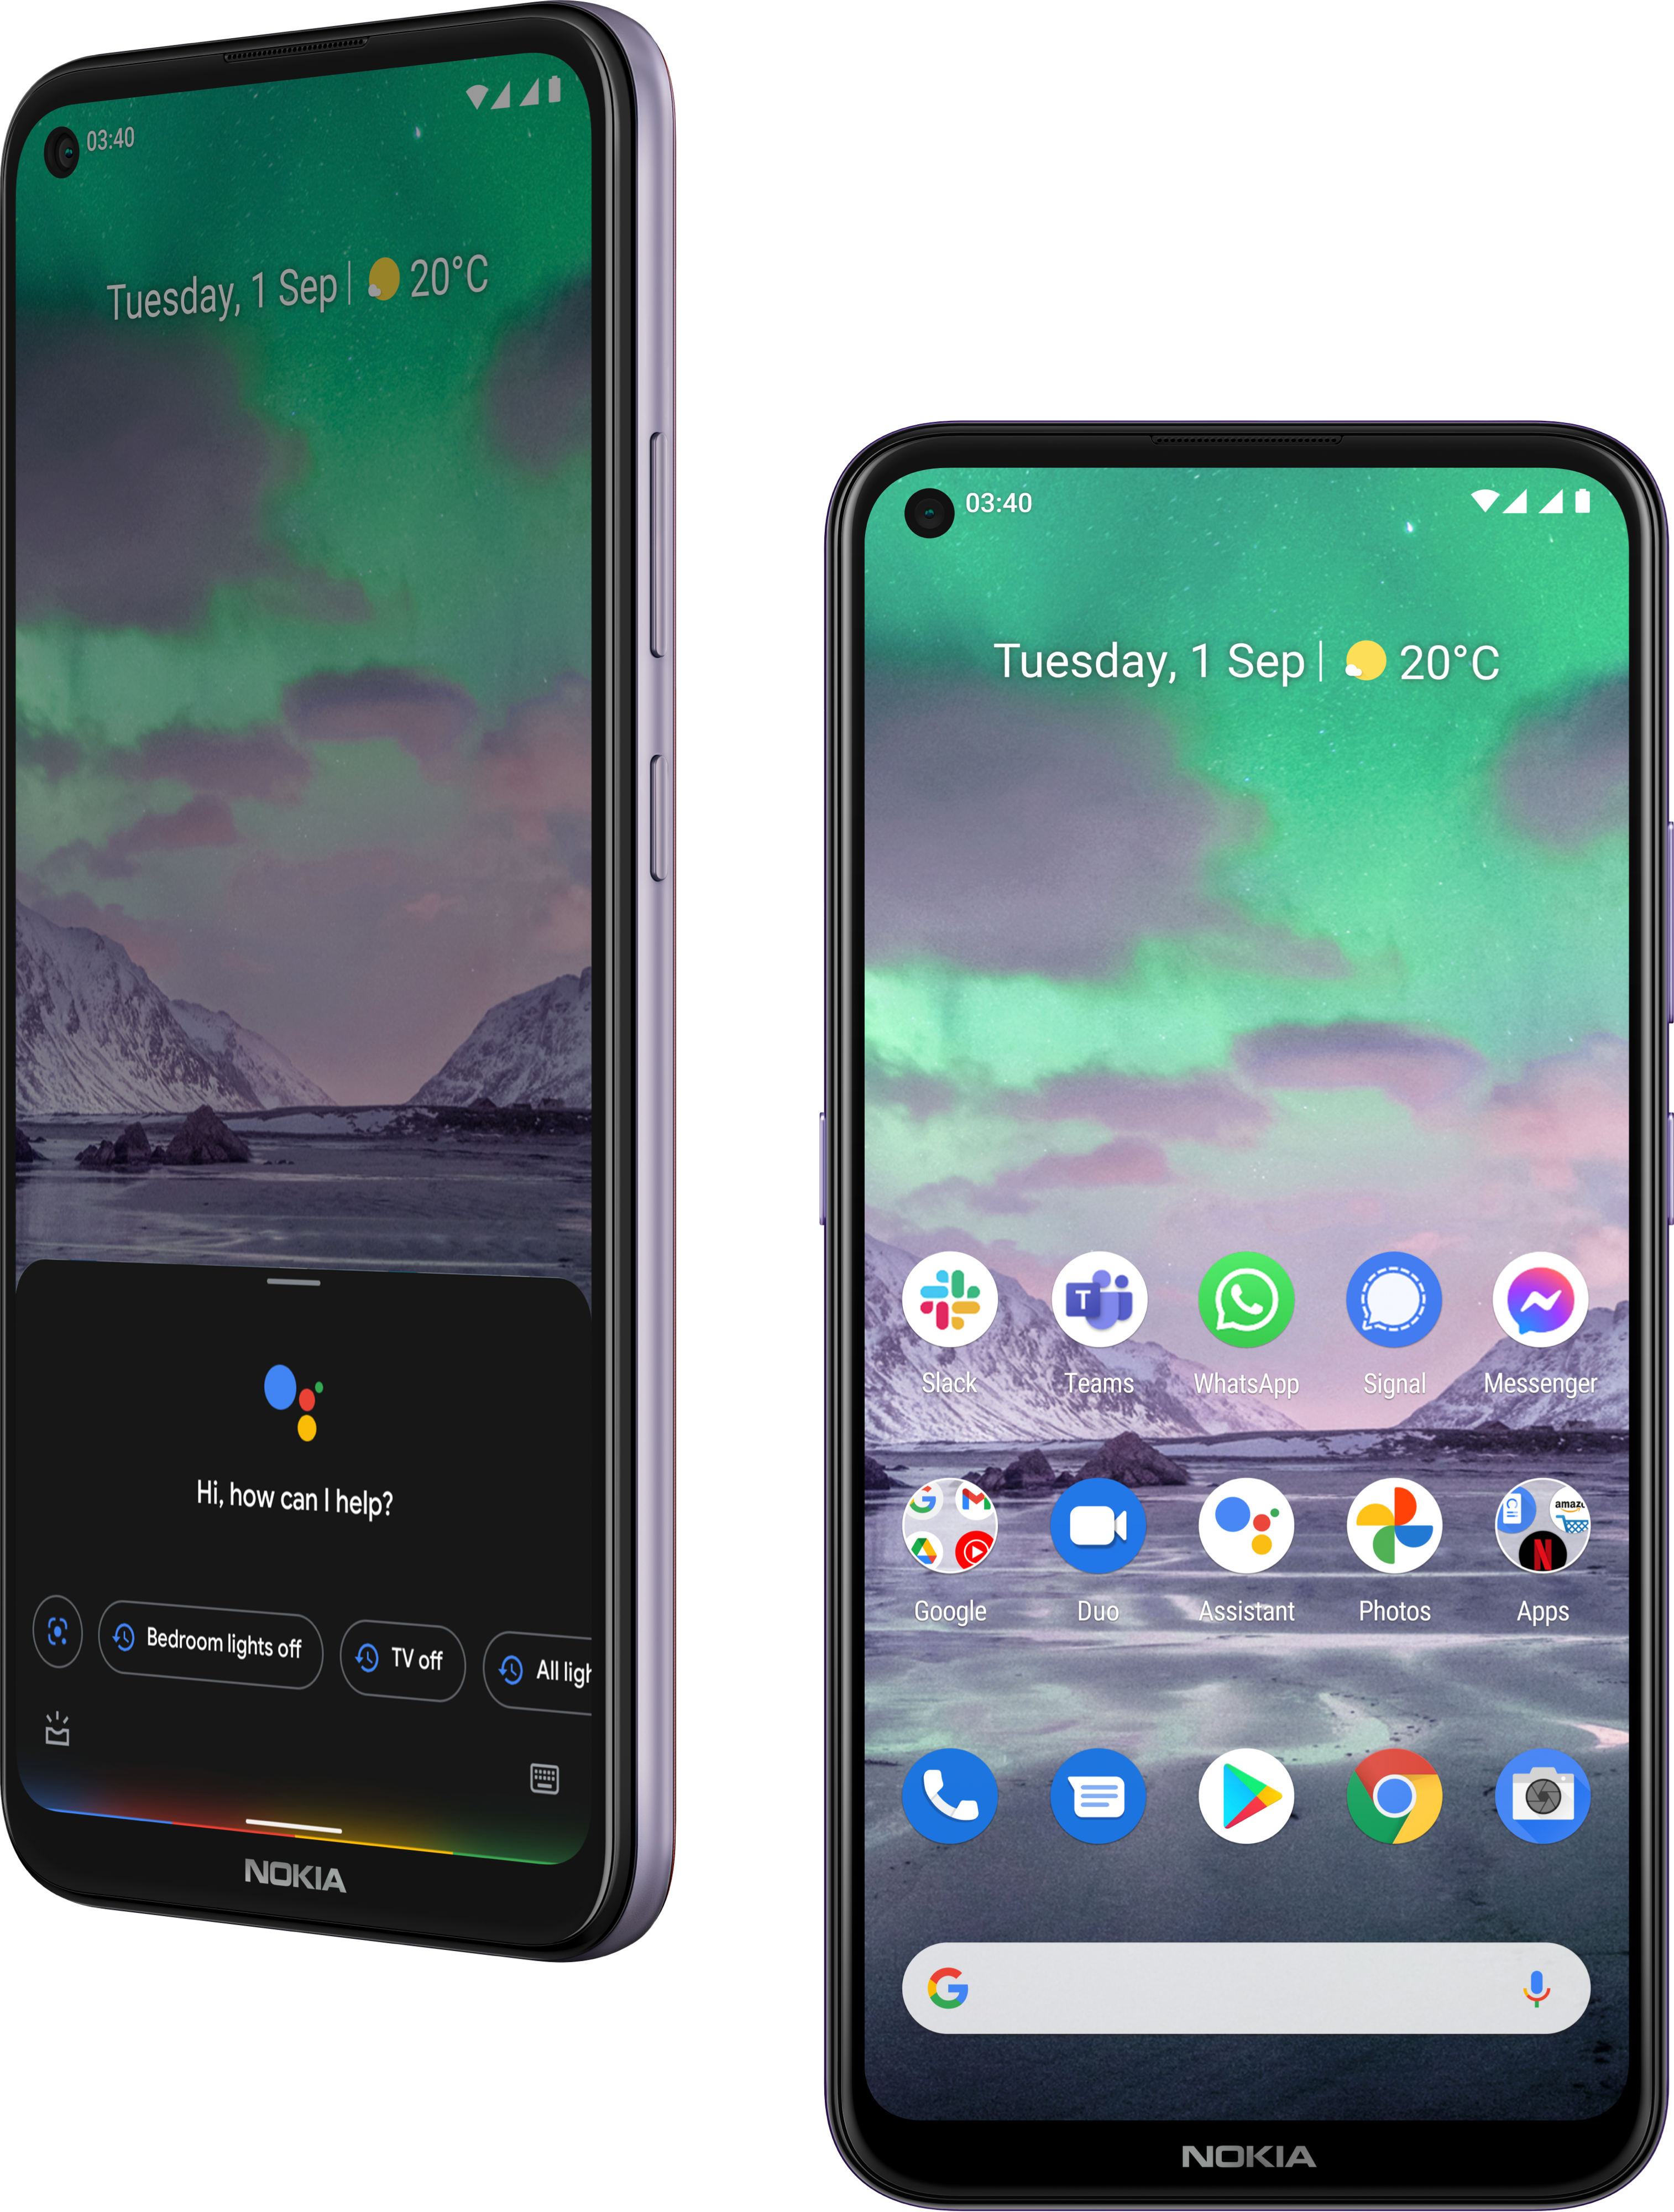 Two Nokia smartphones with Google apps and Google Assistant.